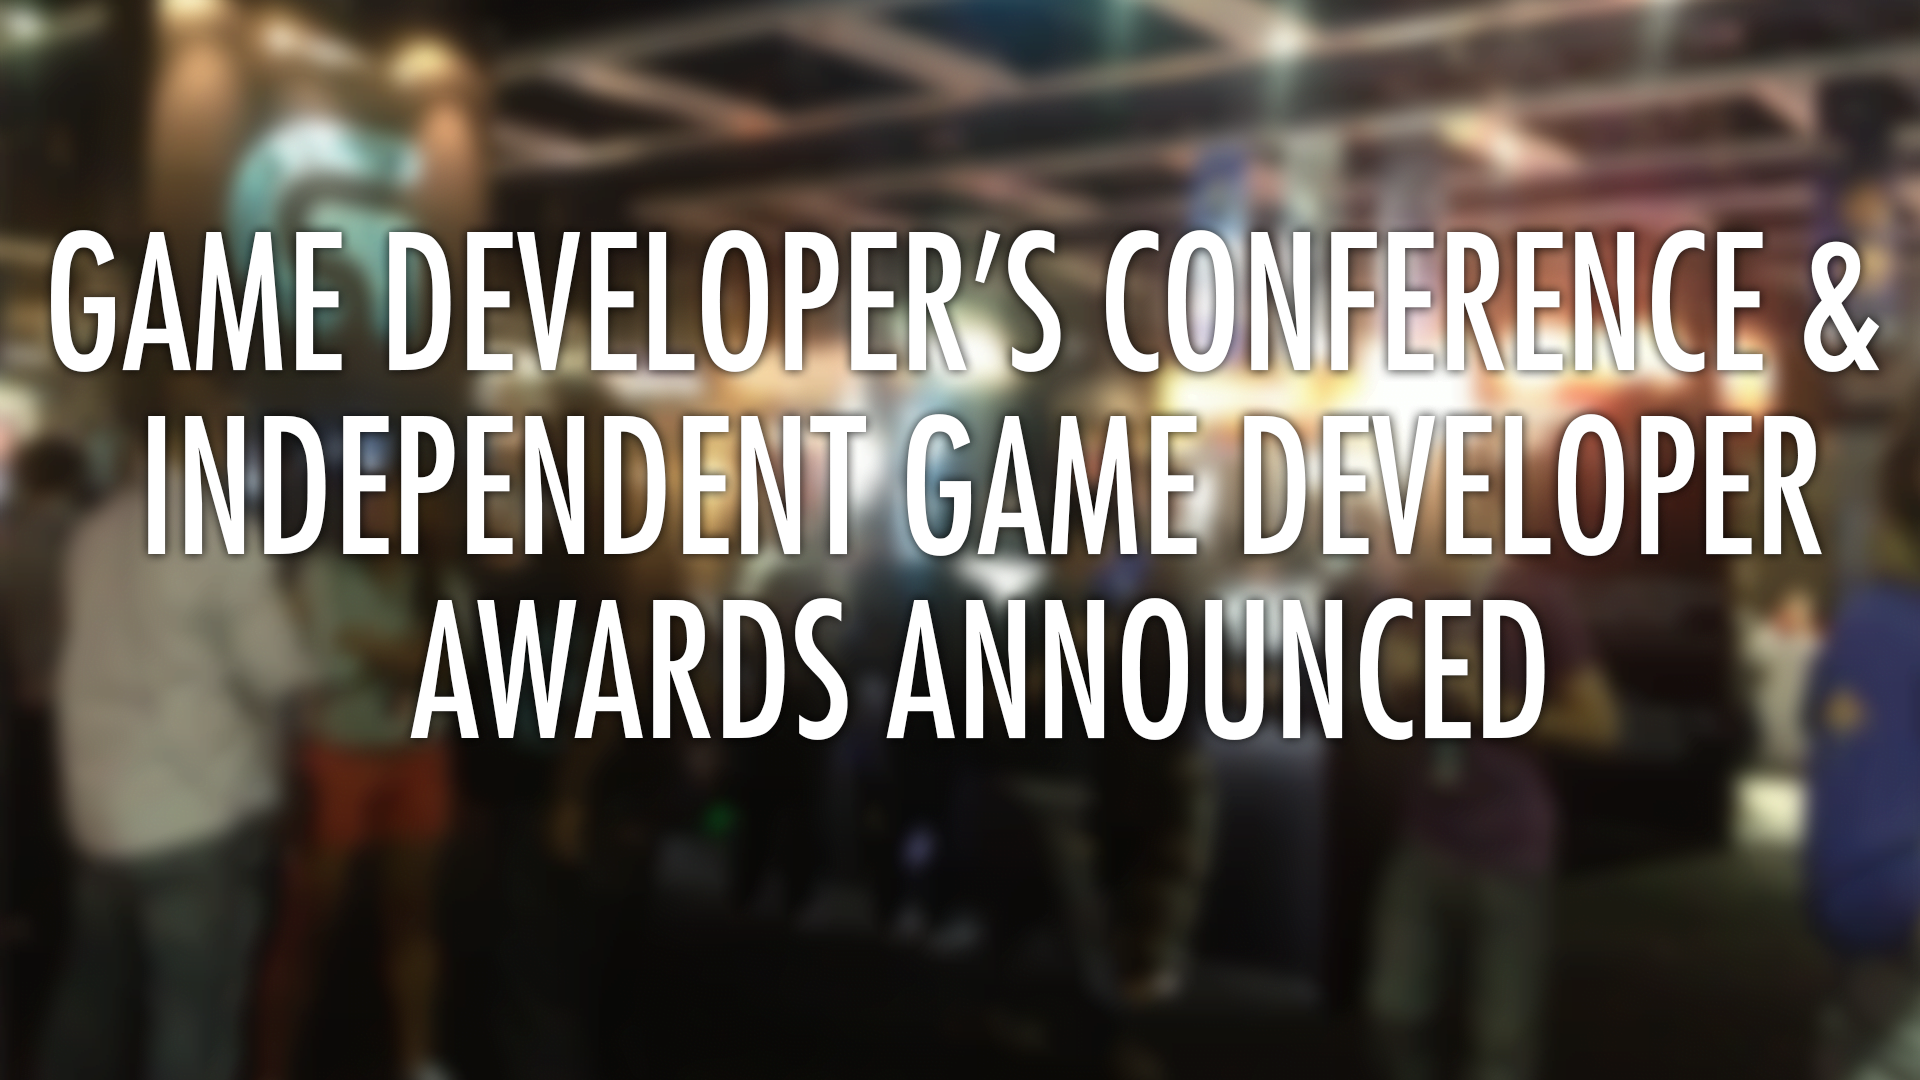 Photo of Game Developer's Conference & Independent Game Developer Awards Announced